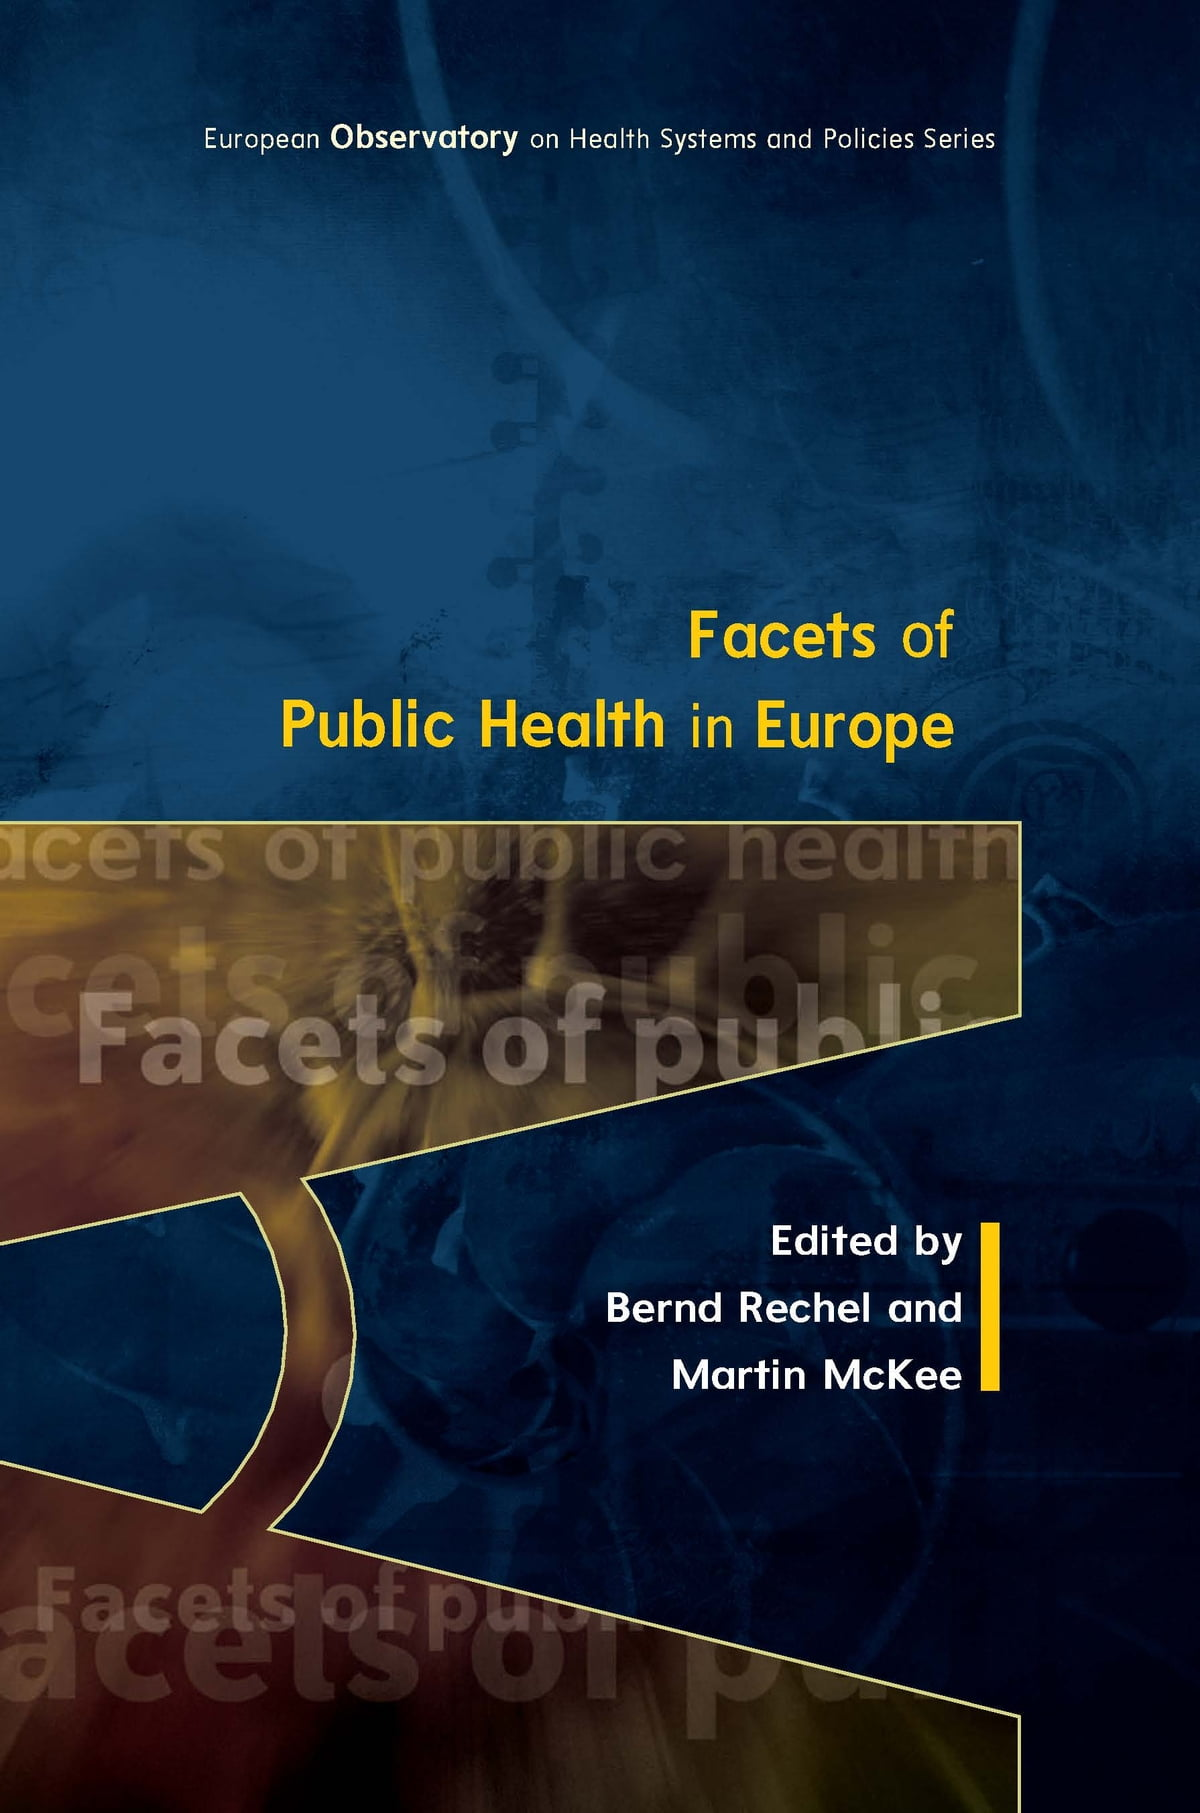 issues in public health mckee martin sim fiona